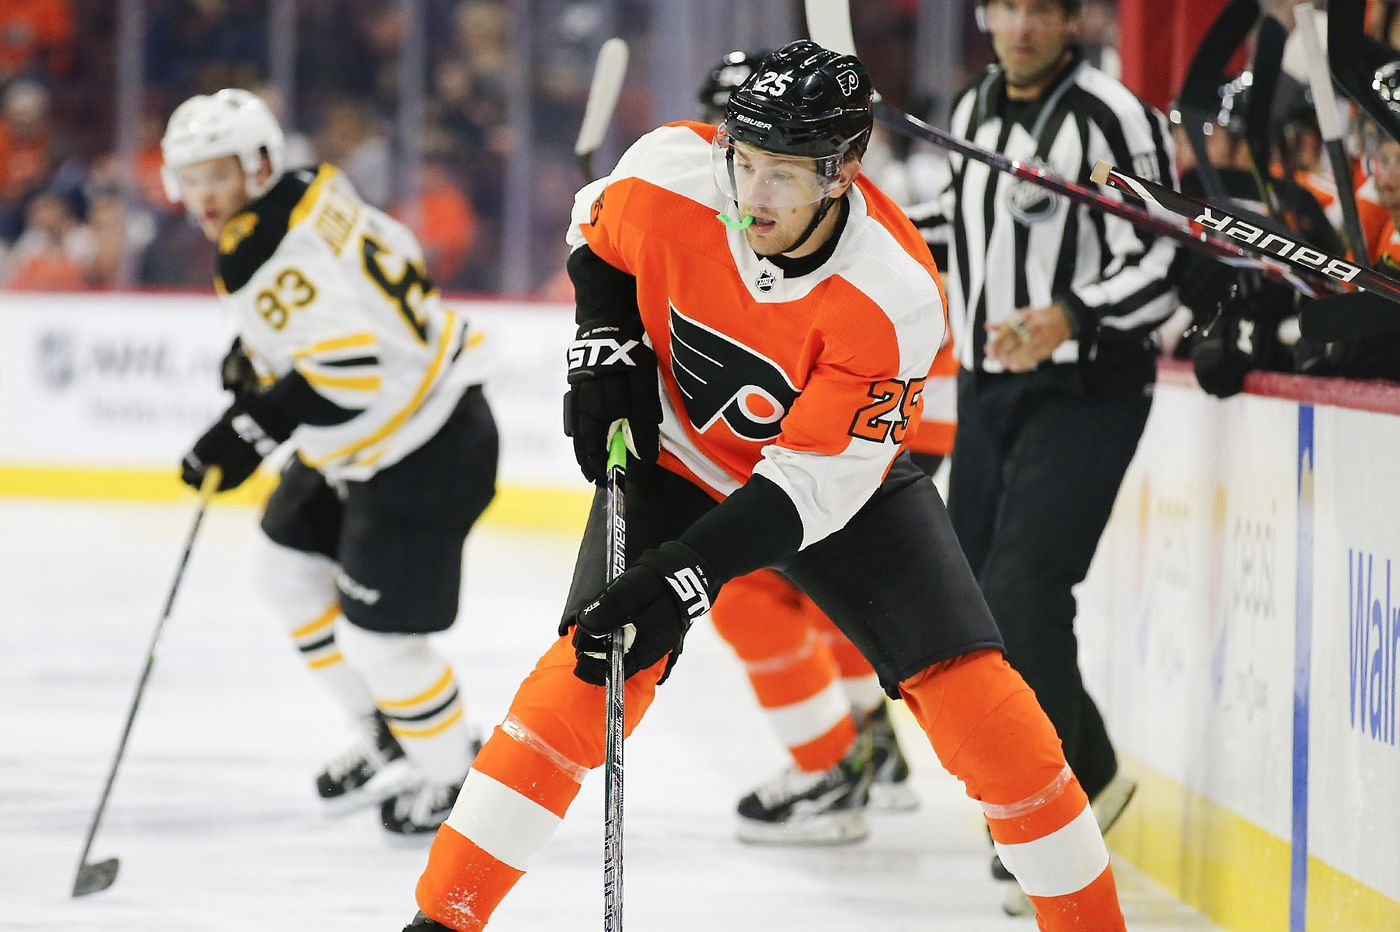 James van Riemsdyk appears set to return; young cancer patient given 1-day contract with Flyers